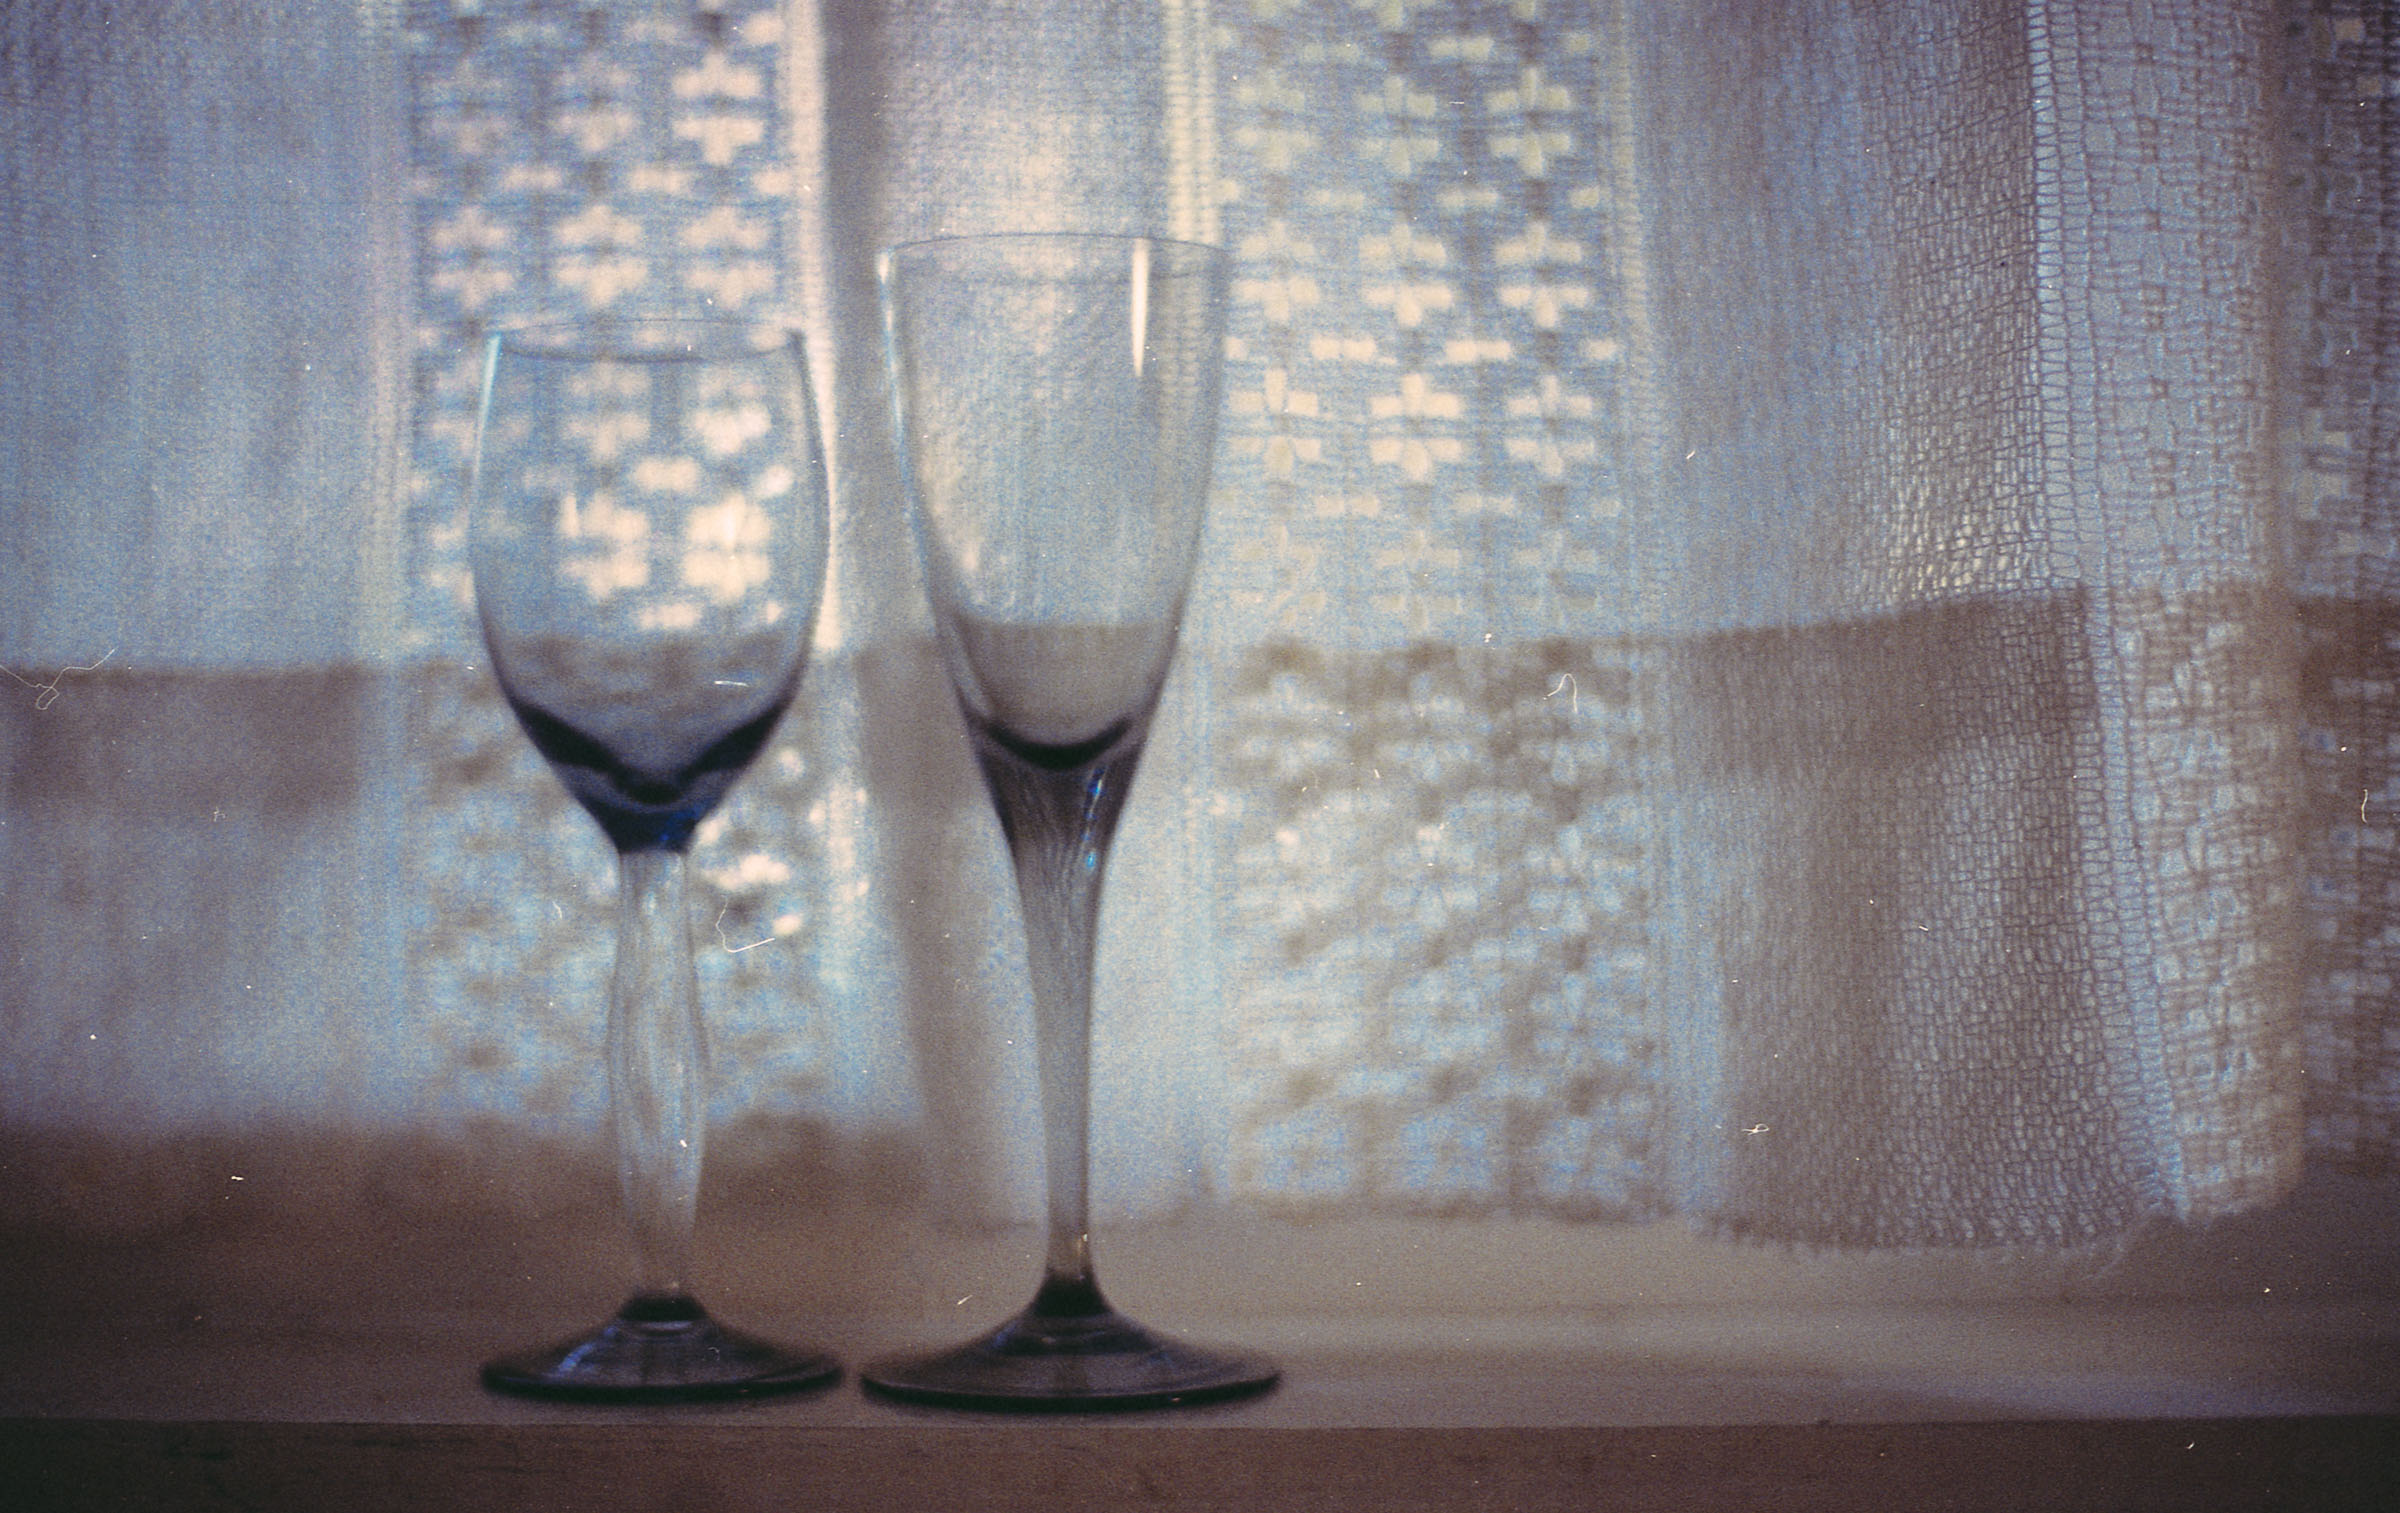 small glasses on a windowsill. copyright leonie wise